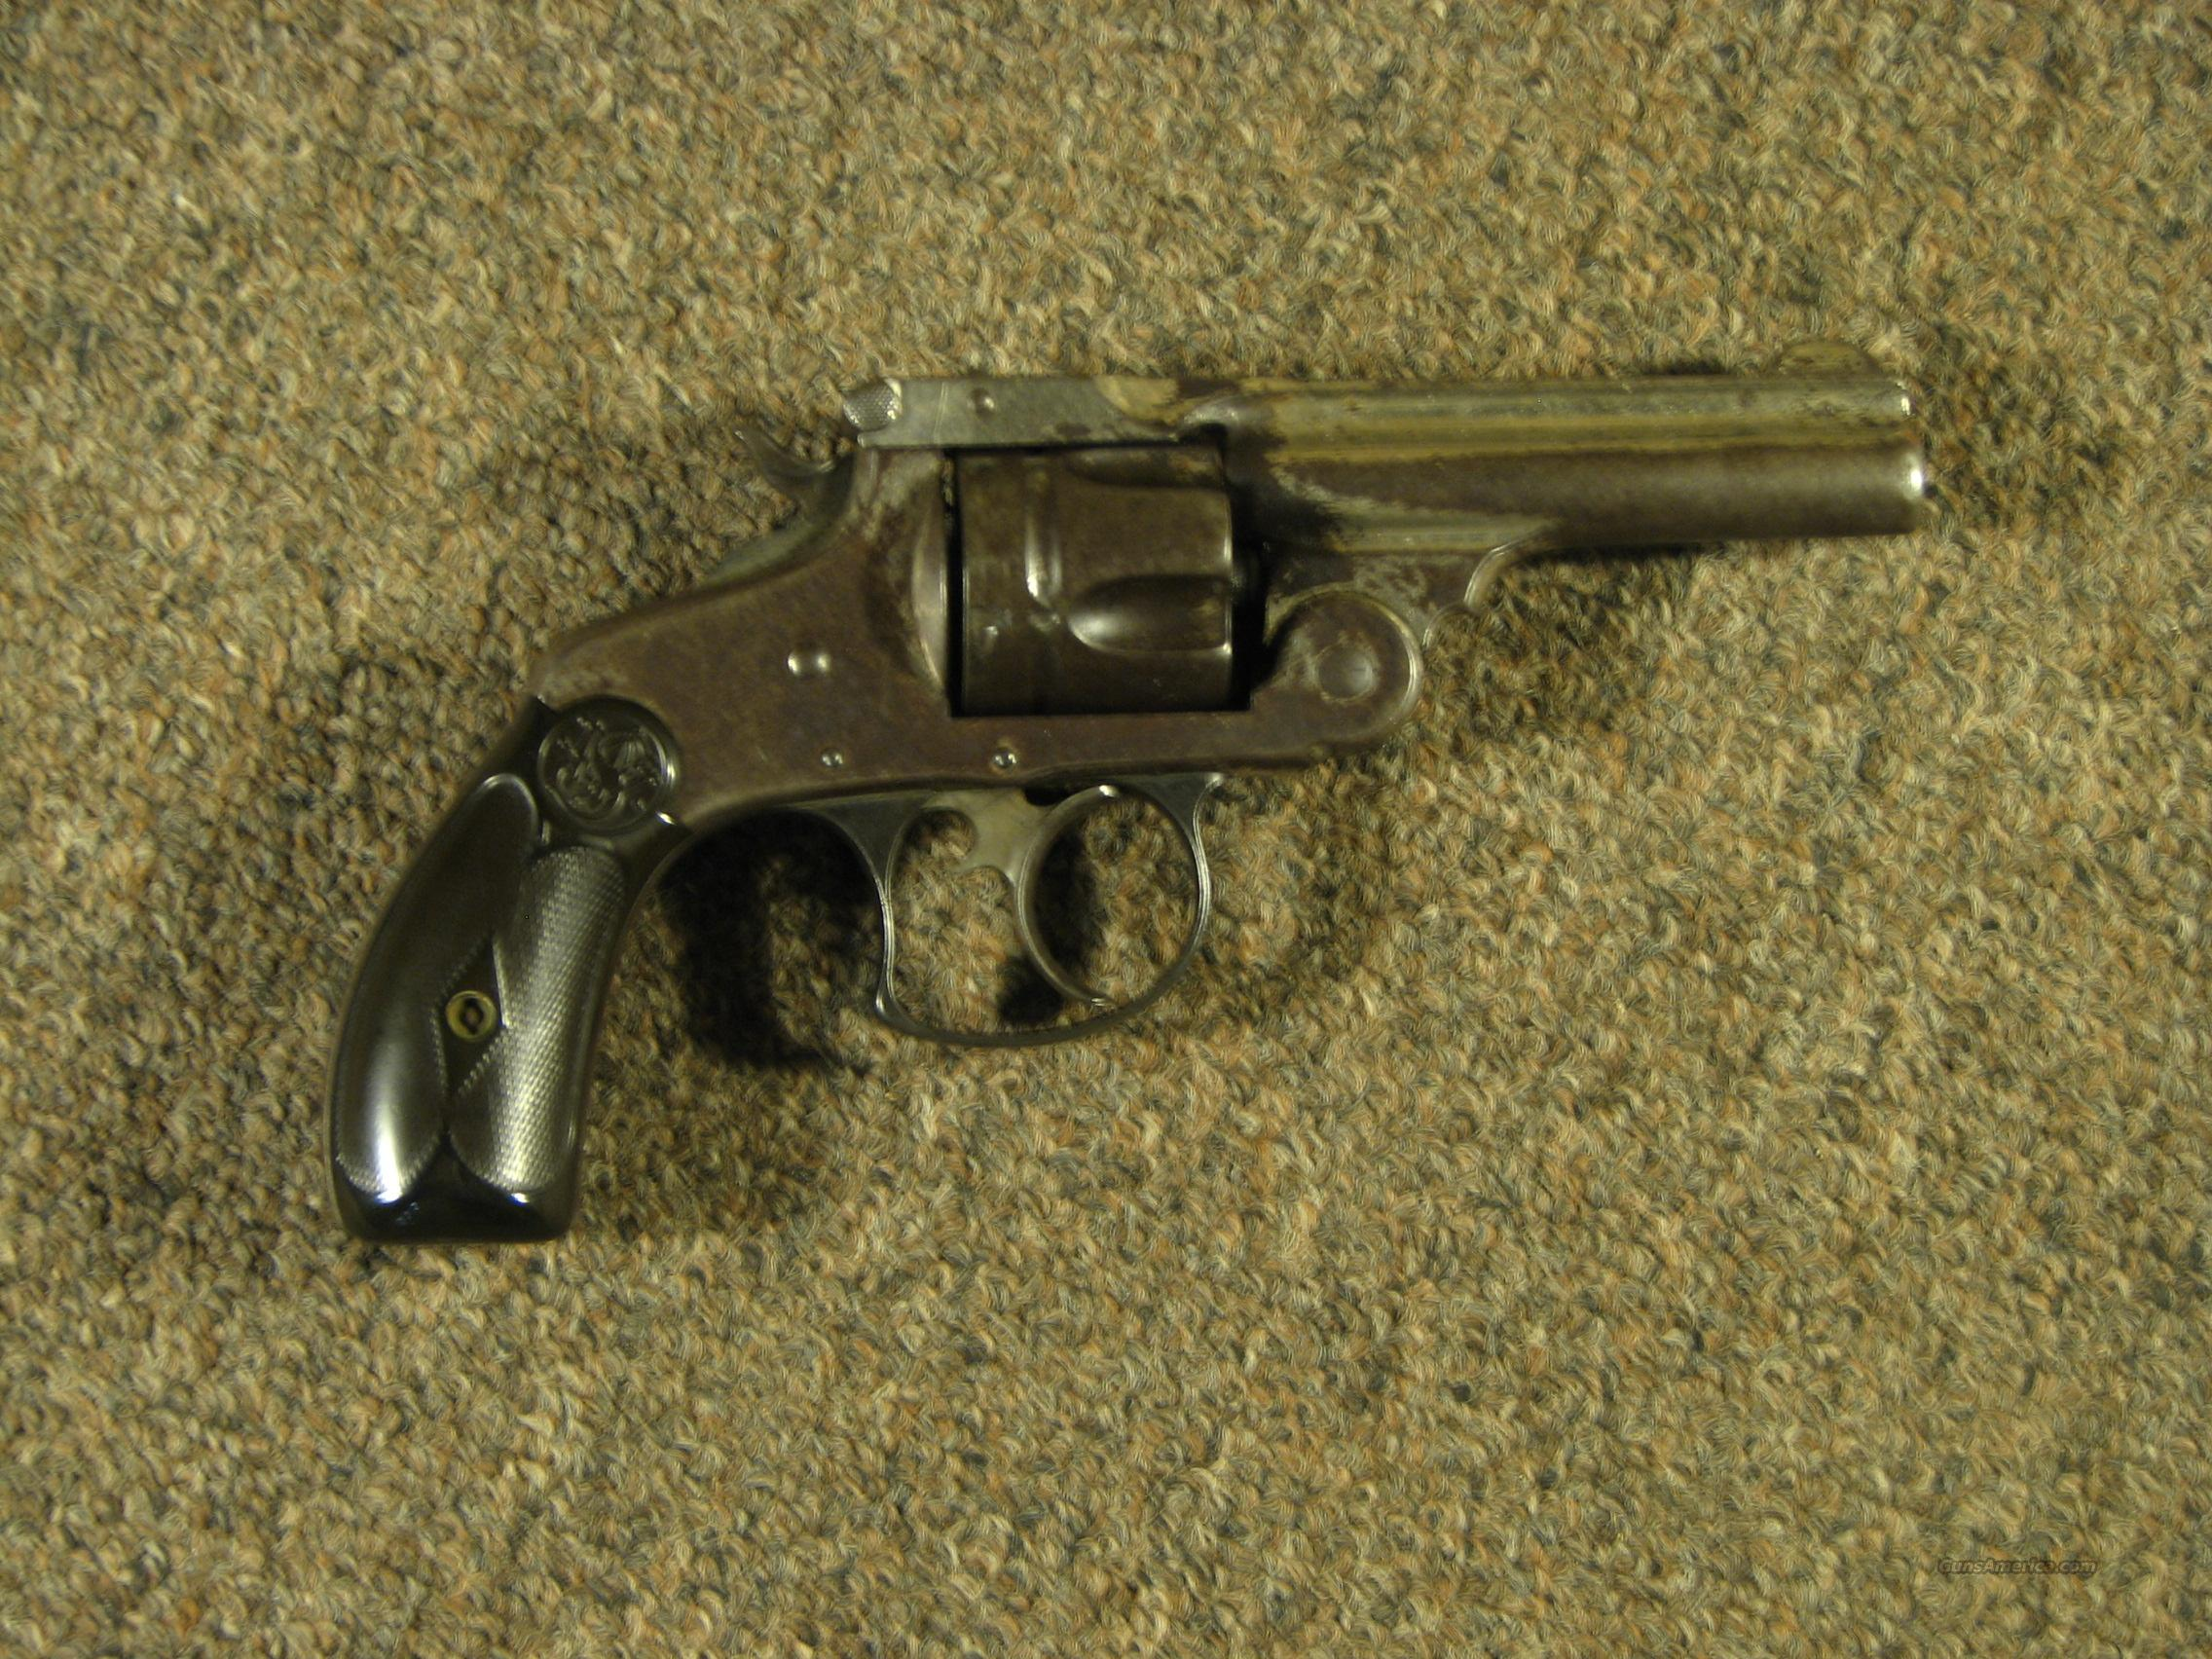 SMITH & WESSON DOUBLE ACTION 2ND MODEL .38 S&W  Guns > Pistols > Smith & Wesson Revolvers > Pre-1899